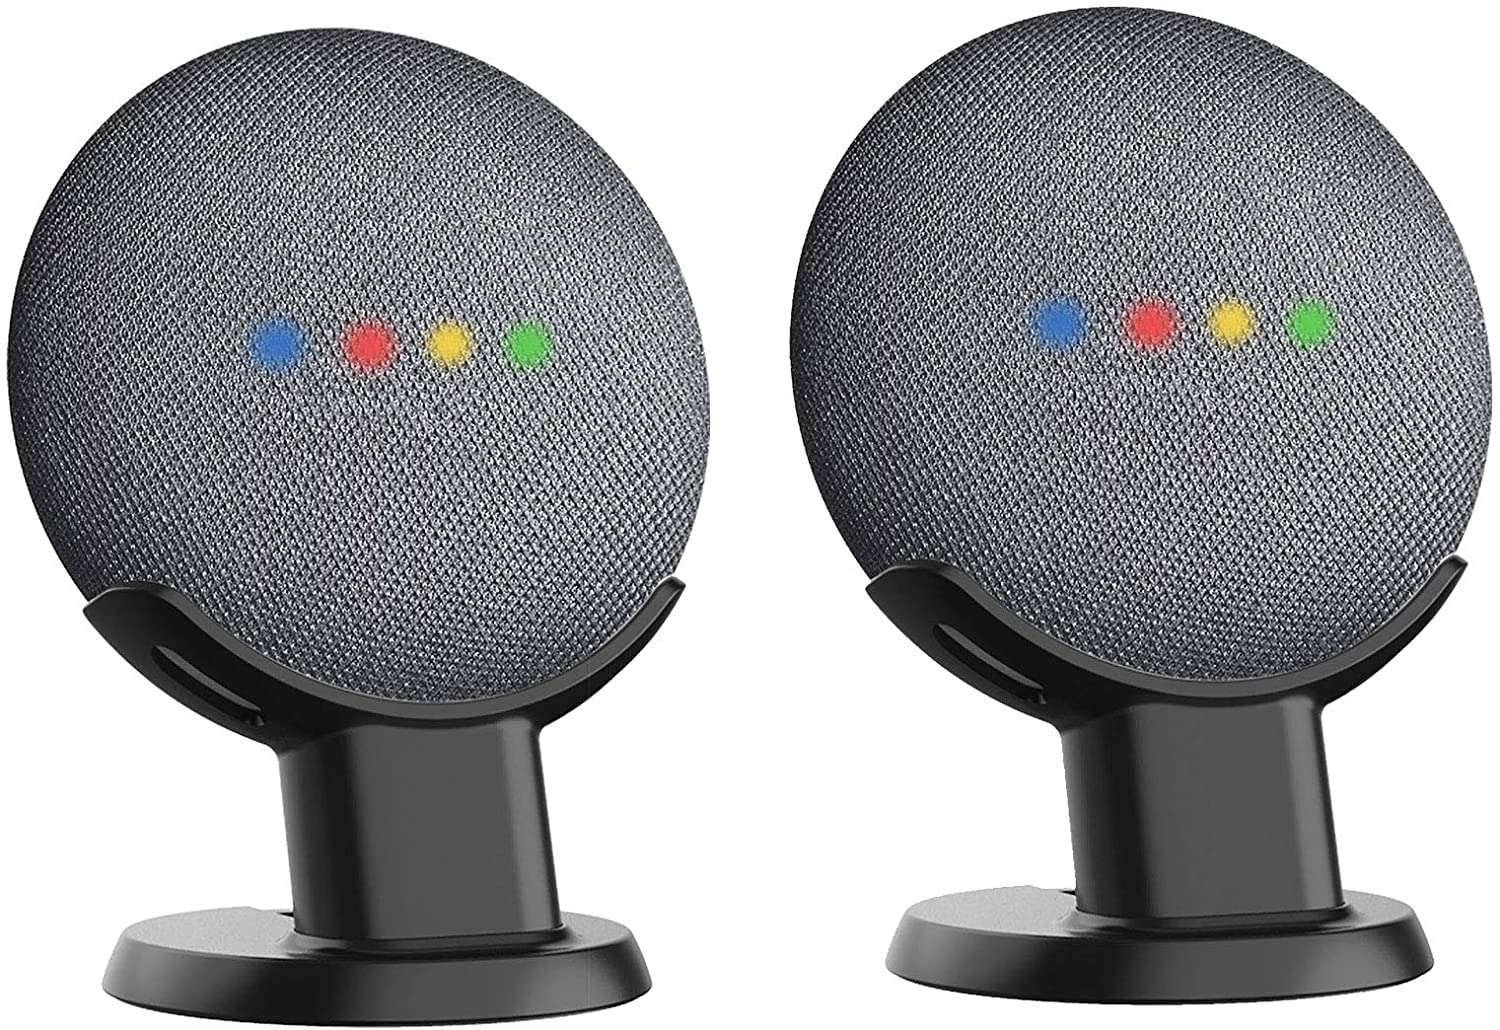 Cleanest Mount Holder Stand for Mini Silver 1st Gen Mount Genie Pedestal for Nest Mini and Google Home Mini 2nd Gen | Improves Sound and Appearance